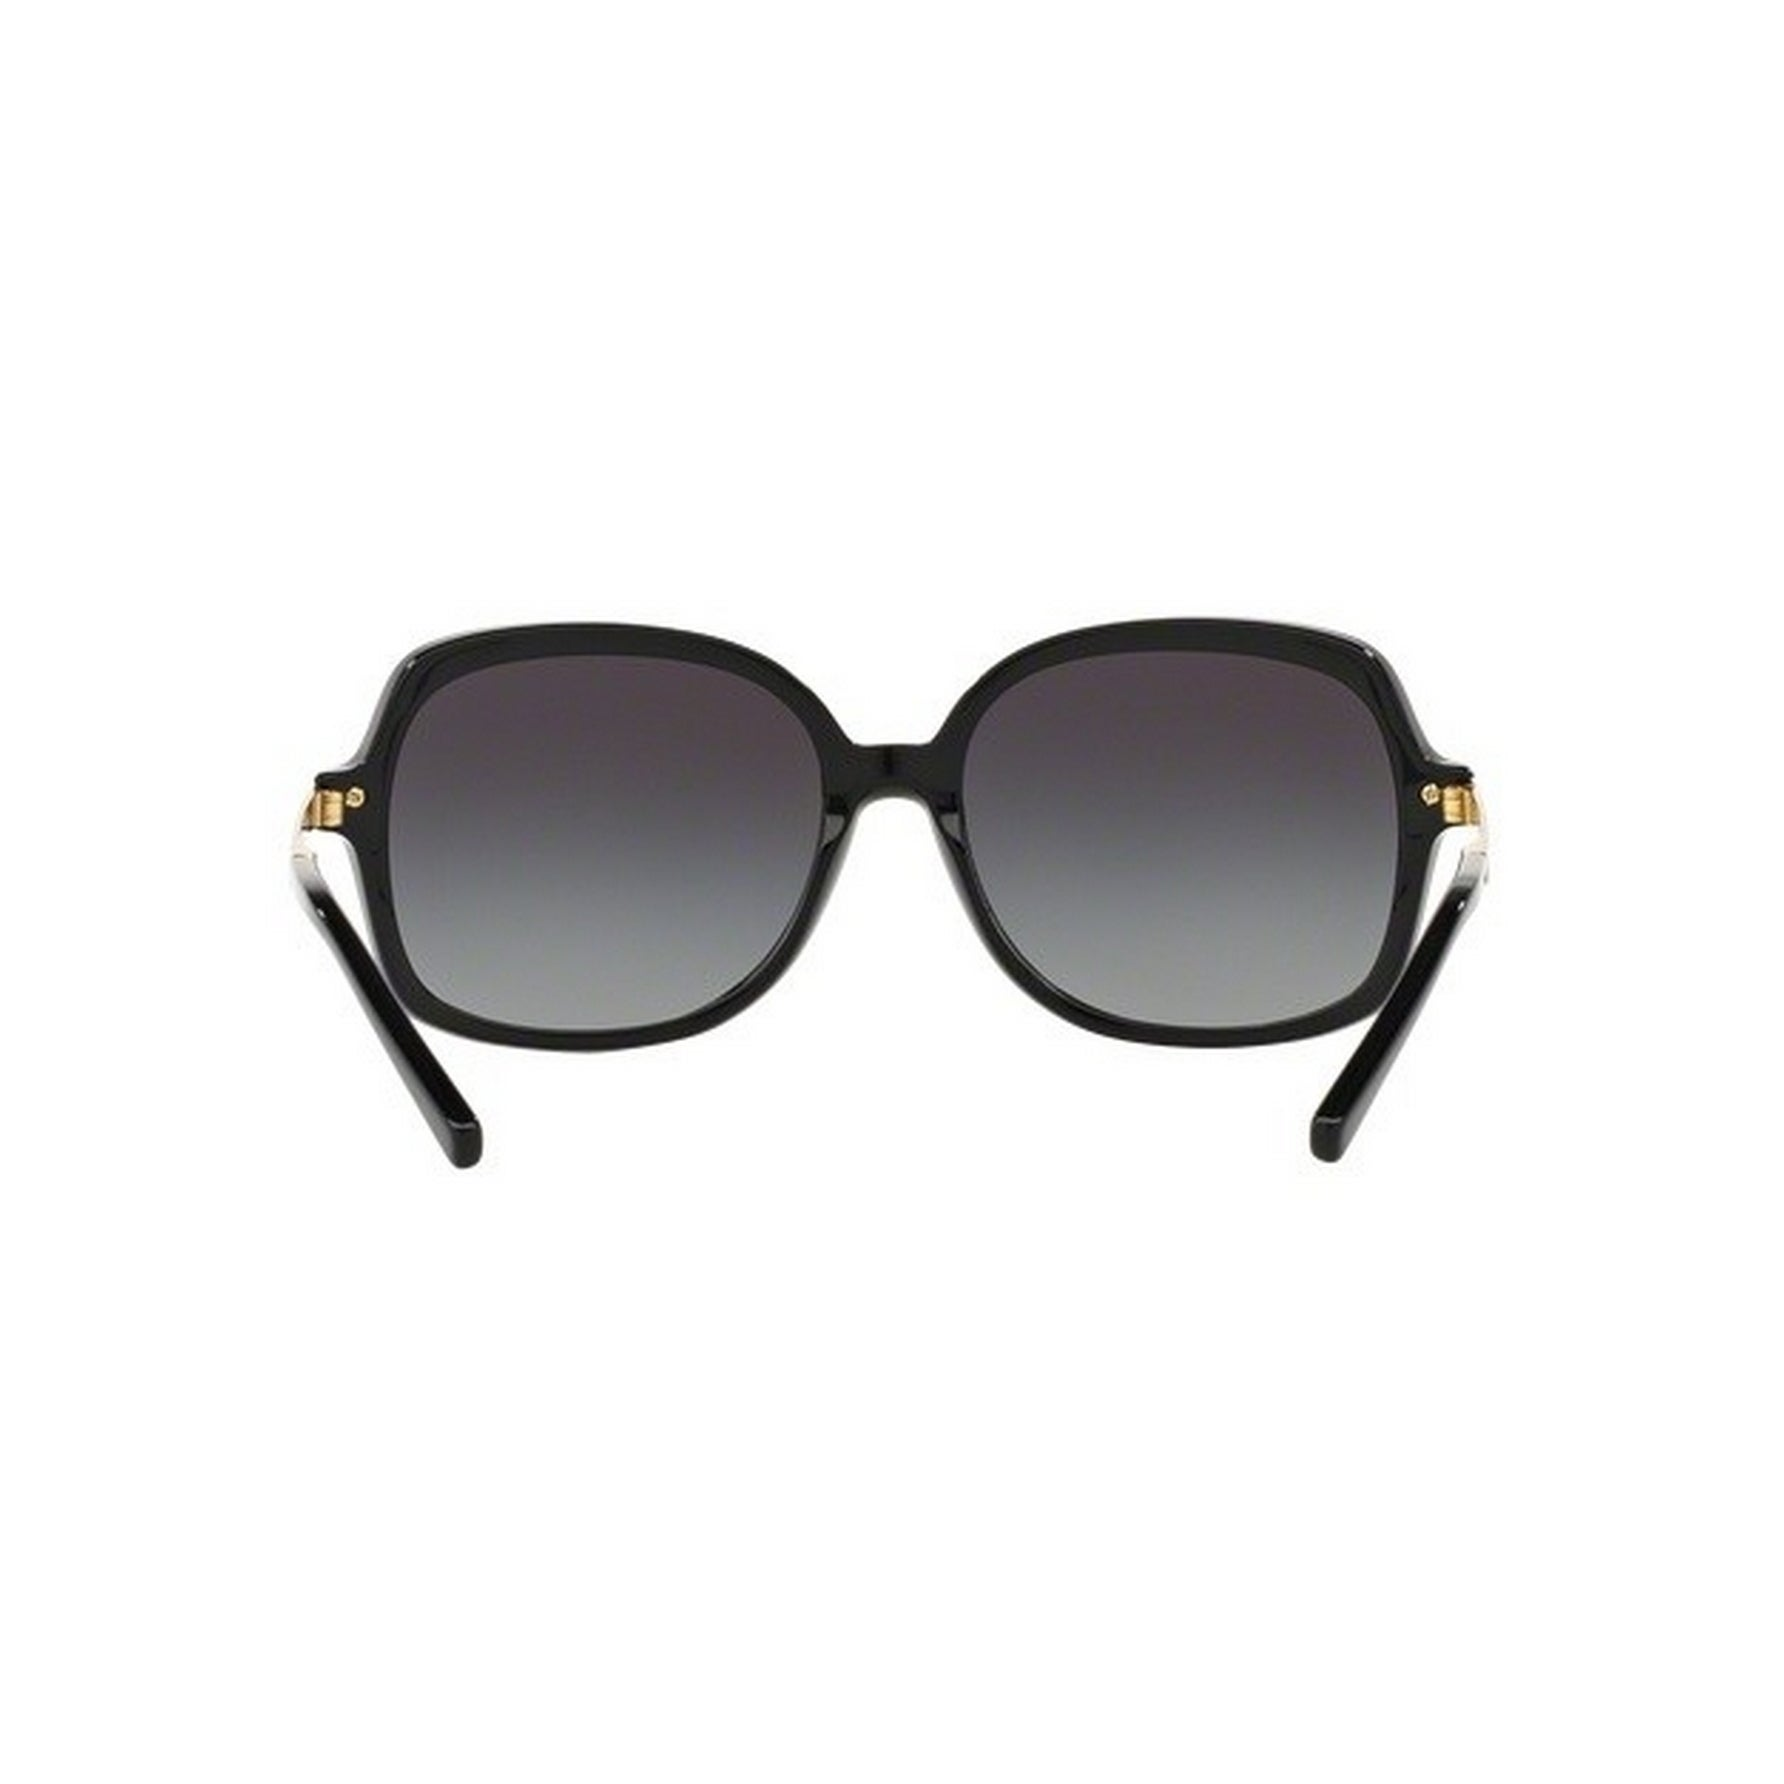 dc3757d842870 Shop Michael Kors Women s MK2024 316011 57 Square Metal Plastic Black Grey  Sunglasses - Free Shipping Today - Overstock.com - 14692019